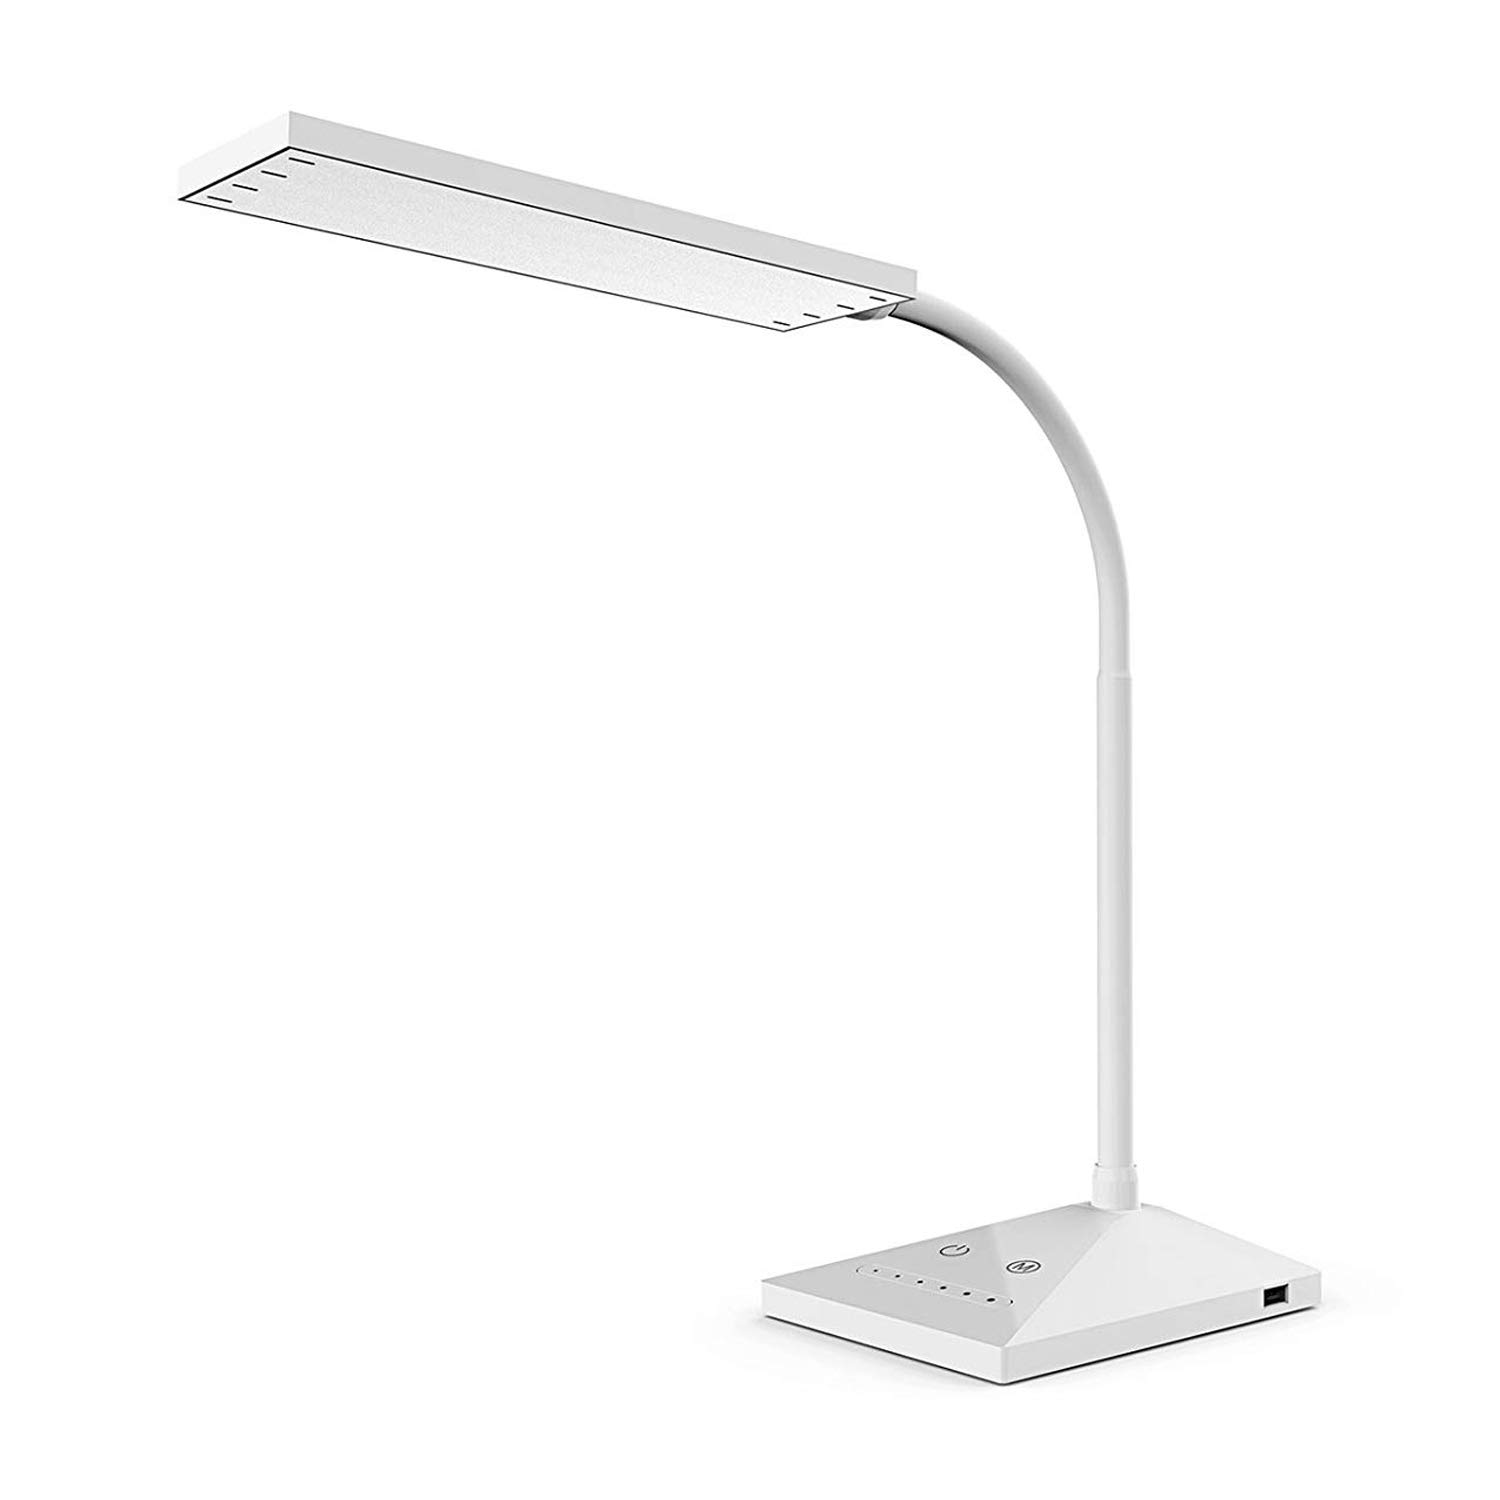 KEXIN LED Desk Lamp with 5 Color Modes and 7 Brightness Levels, 12W Eye-caring Dimmable Touch Sensitive Control Gooseneck Reading Lamp,Office Table Lamp with USB Charging Port, Memory Function - Black